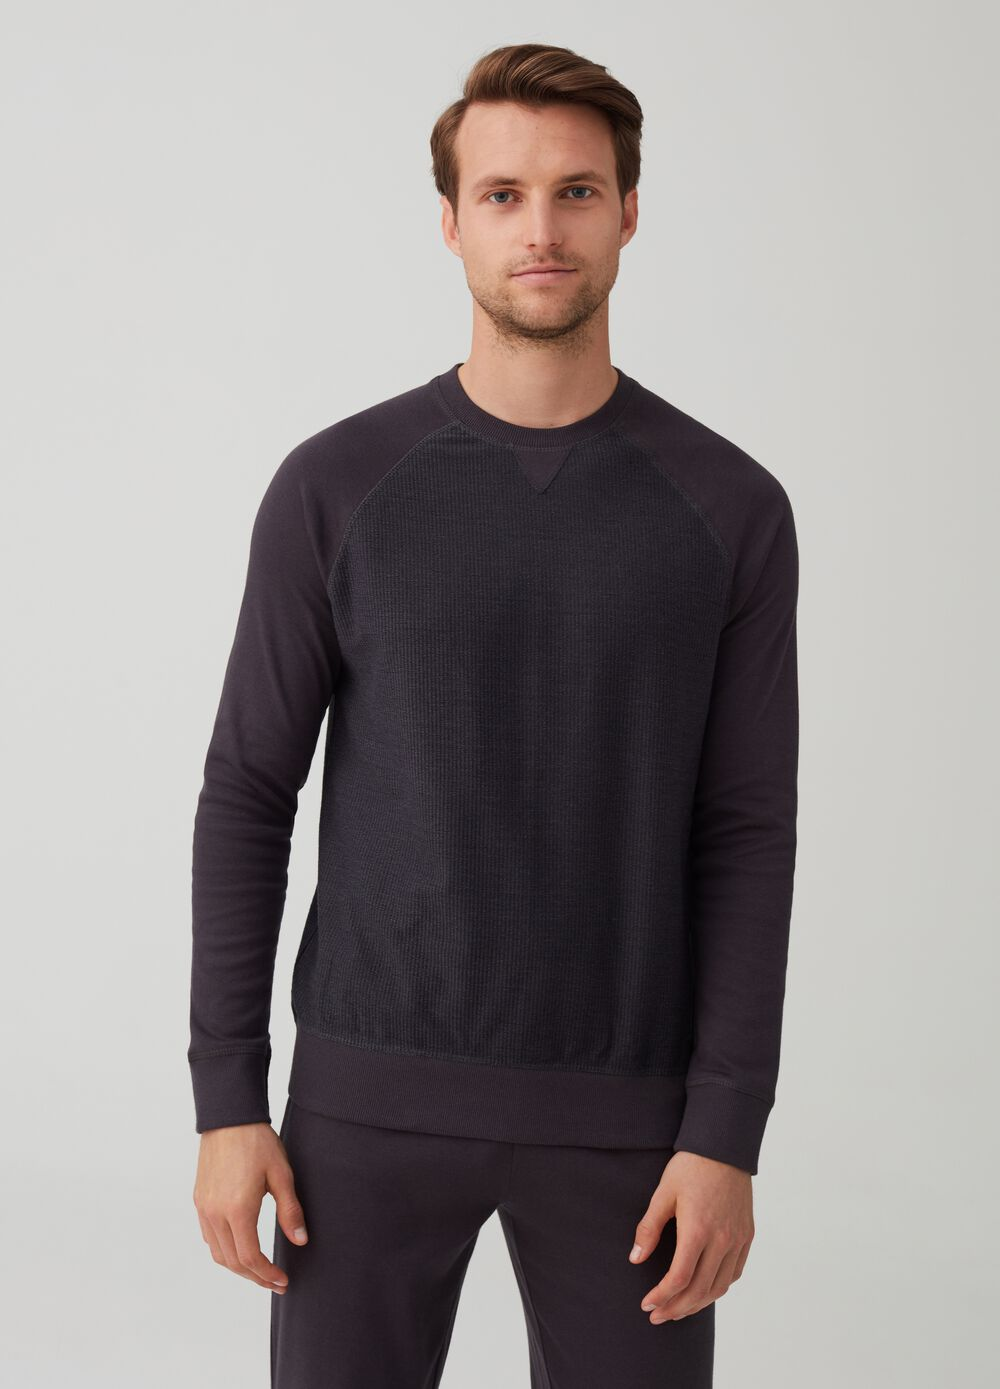 Crew neck pyjamas in 100% warm cotton